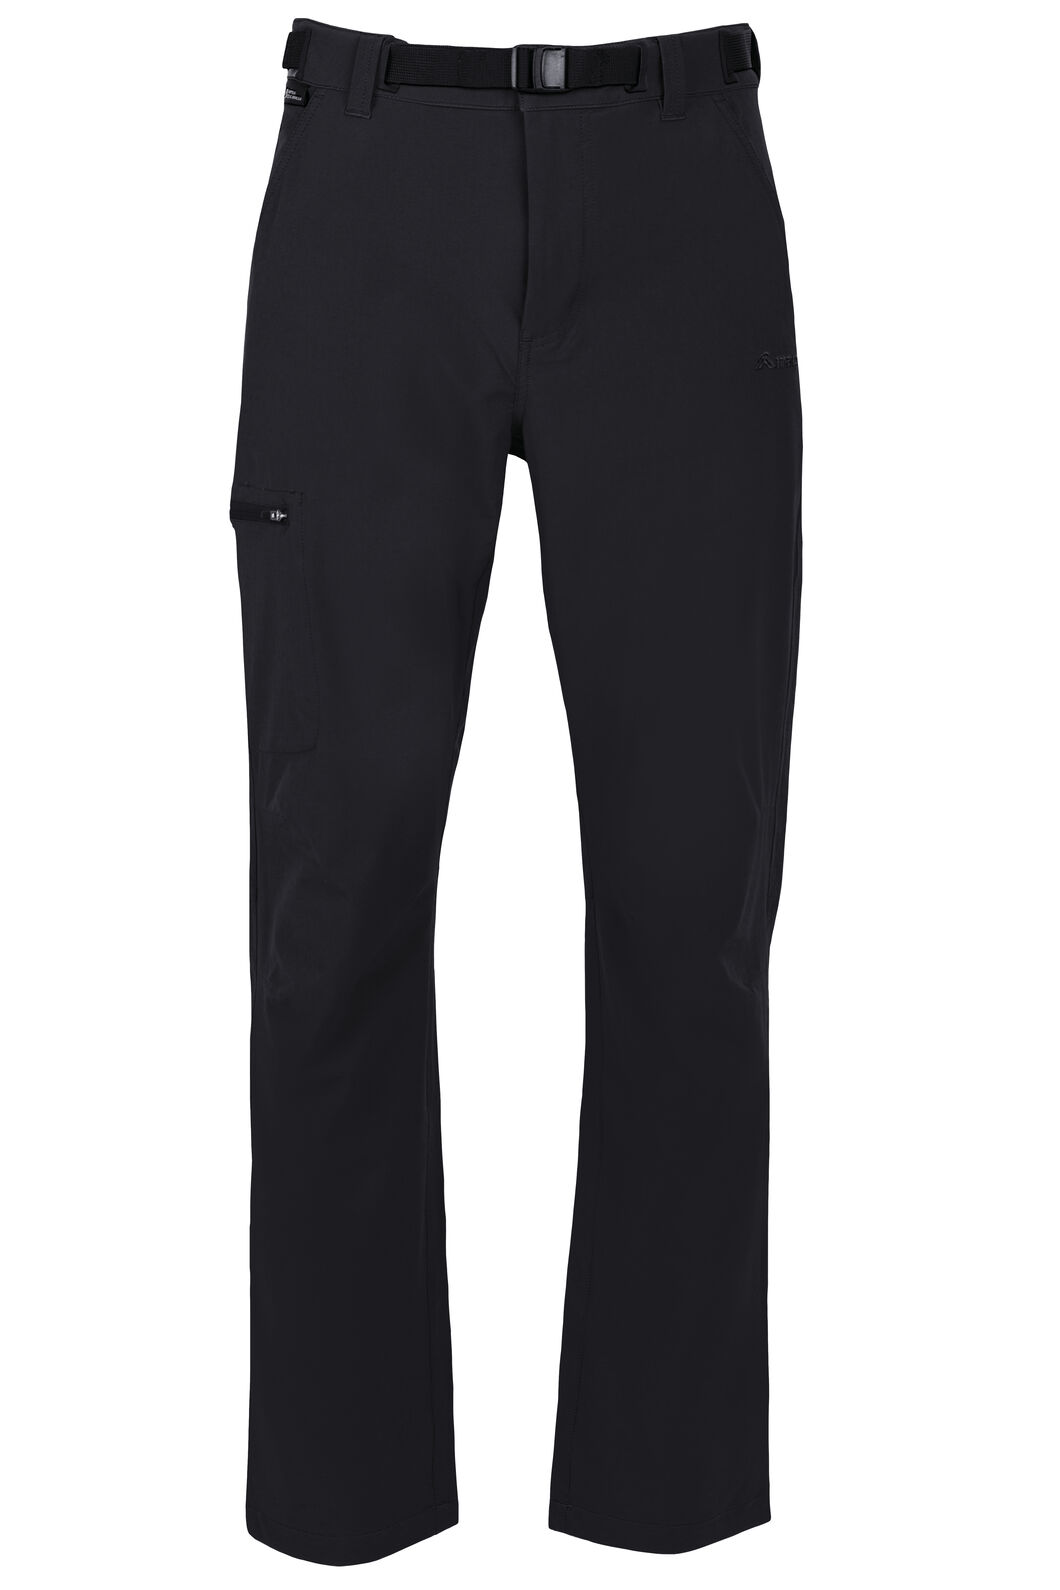 Macpac Trekker Pertex® Equilibrium Softshell Pants - Men's, Black, hi-res